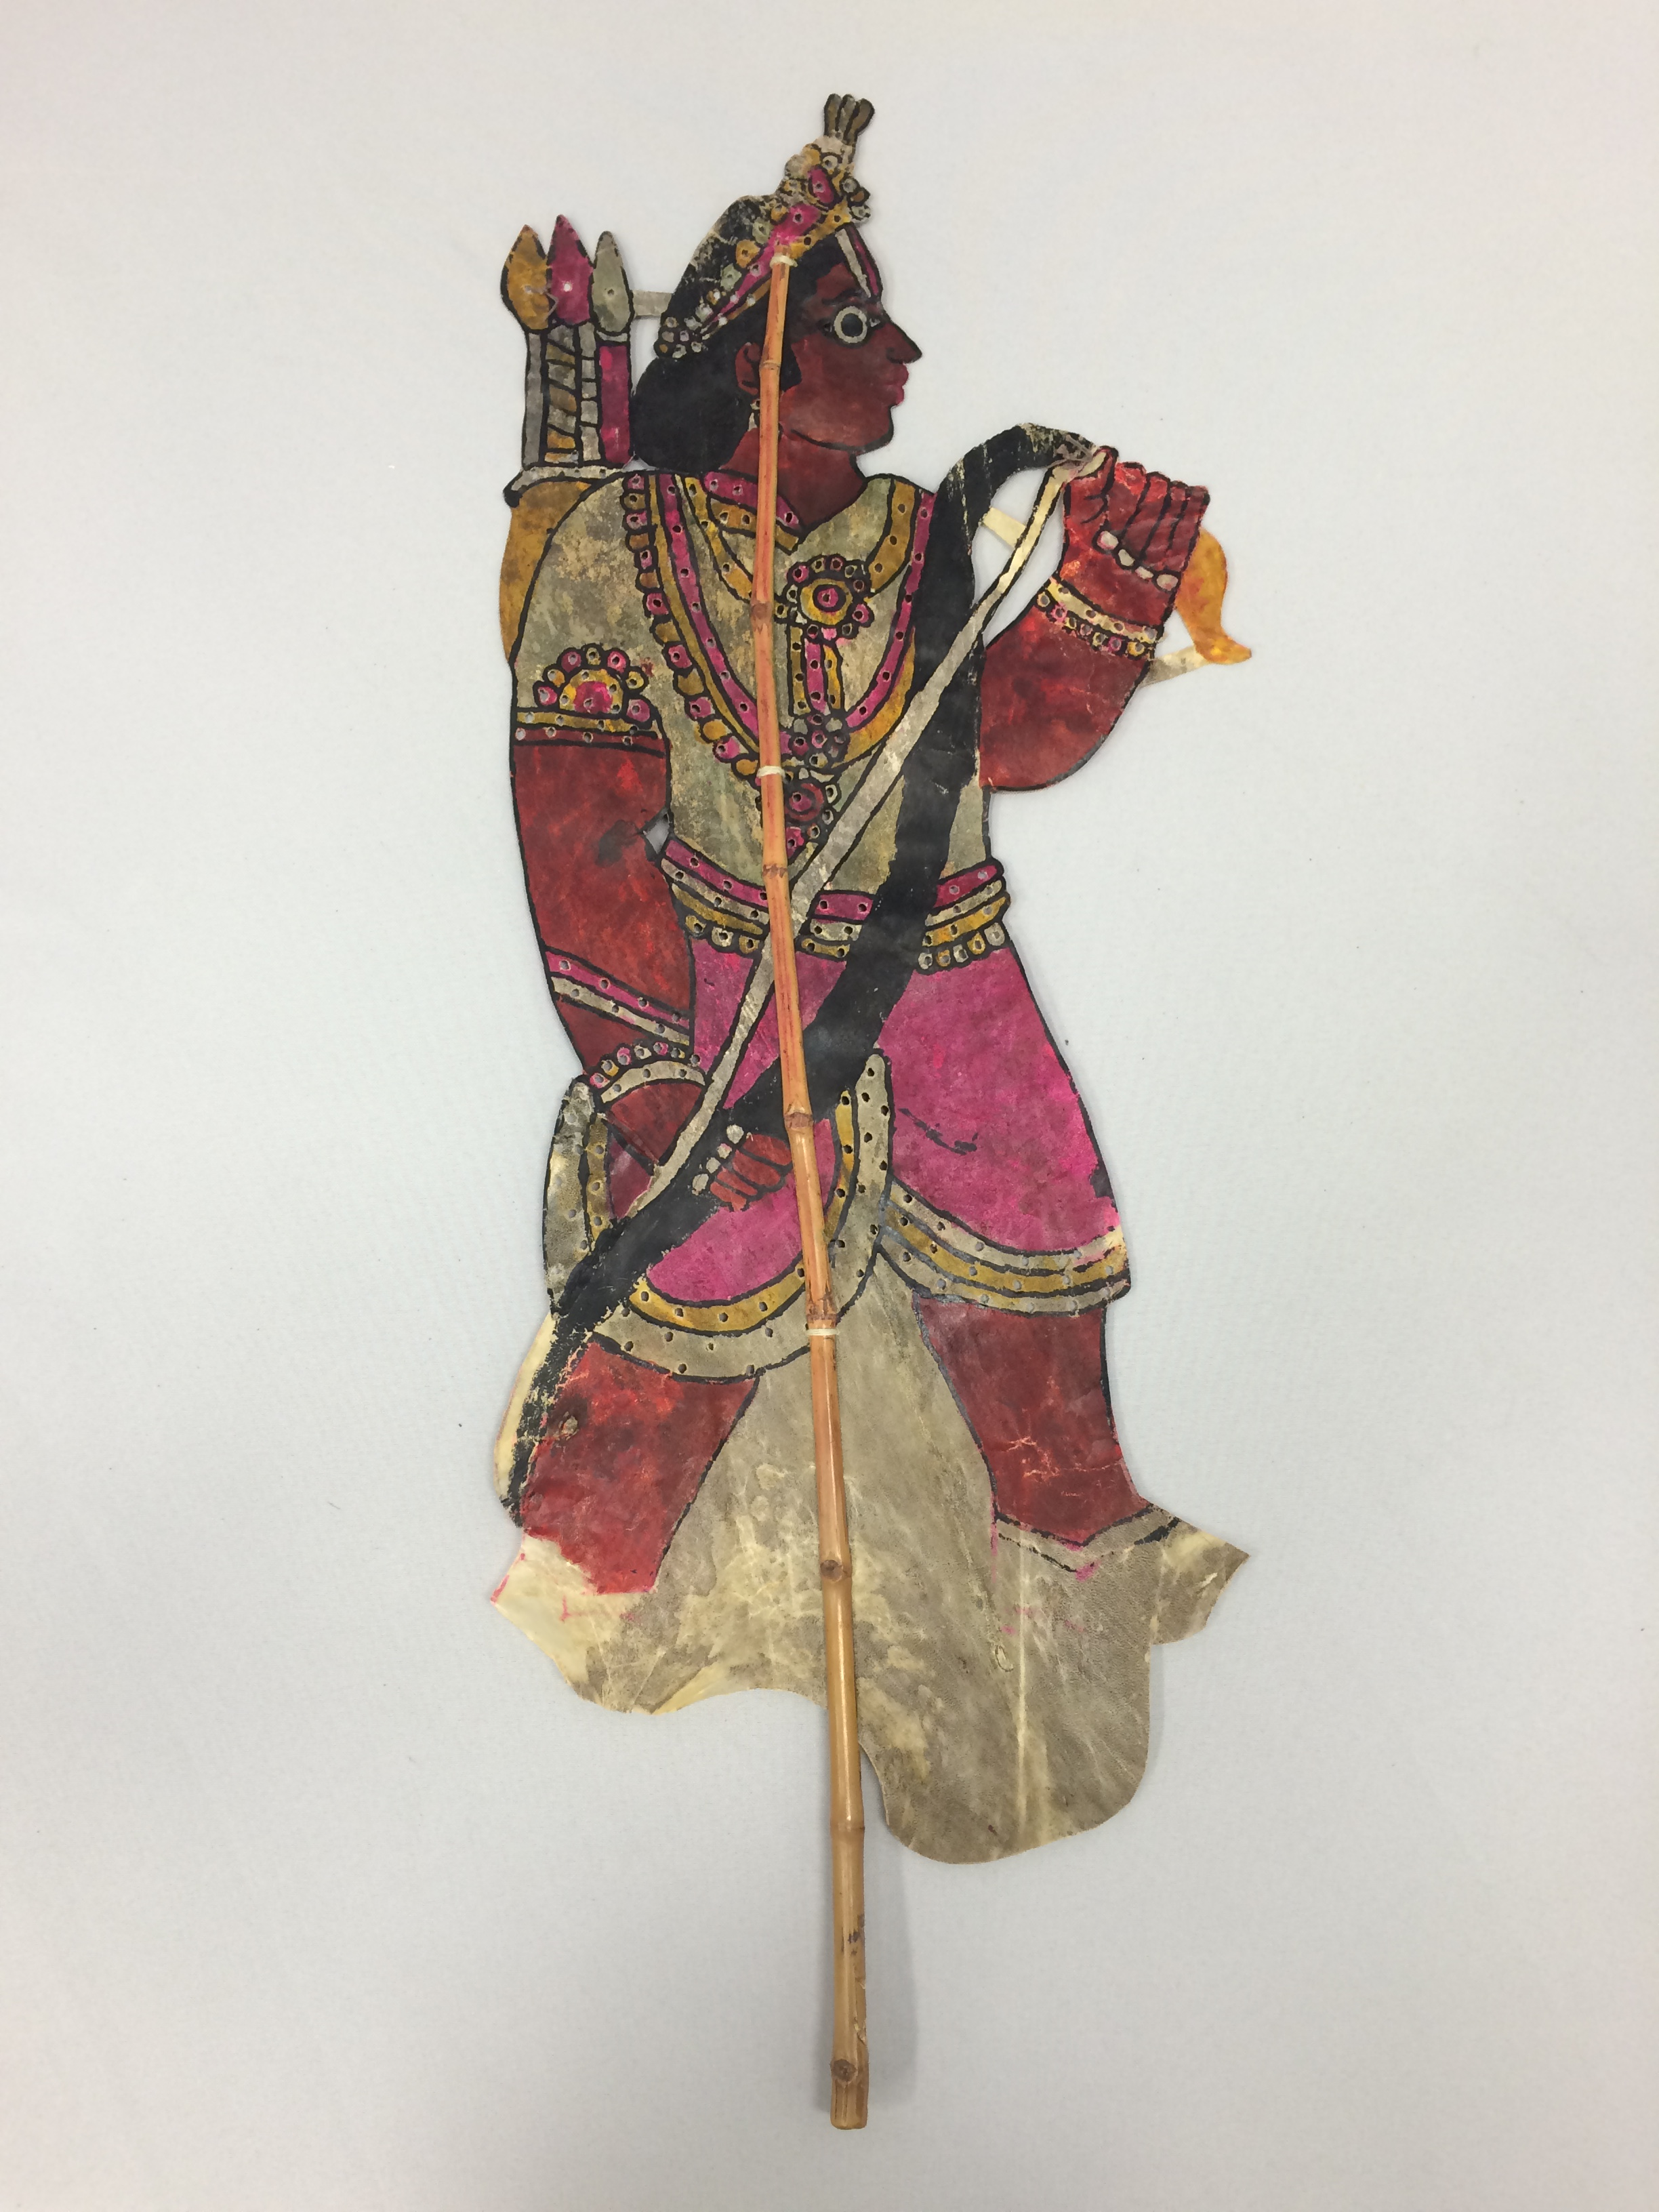 Lakshmana, du Râmâyana, une marionnette d'ombre traditionnelle de Karnataka, en Inde, togalu gombeya</em>ta</em>, hauteur : 64 cm. Collection: Center for Puppetry Arts (Georgia, Atlanta, United States), donné par Melvyn Helstien (1991)